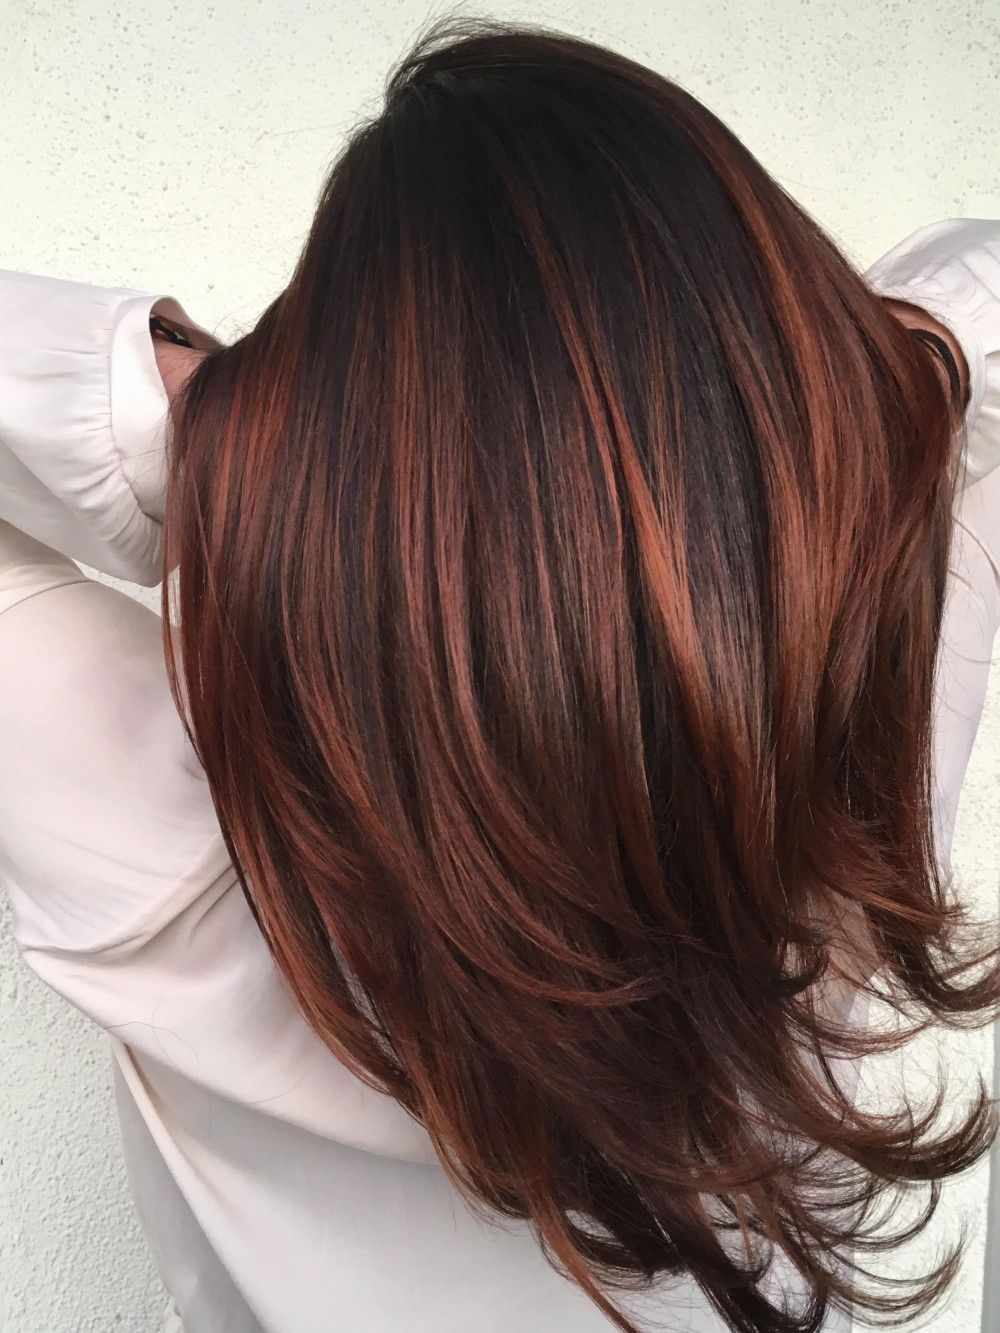 21 Hair Color Ideas for Brunettes with Red #fallhaircolorforbrunettes 21 Hair Co…